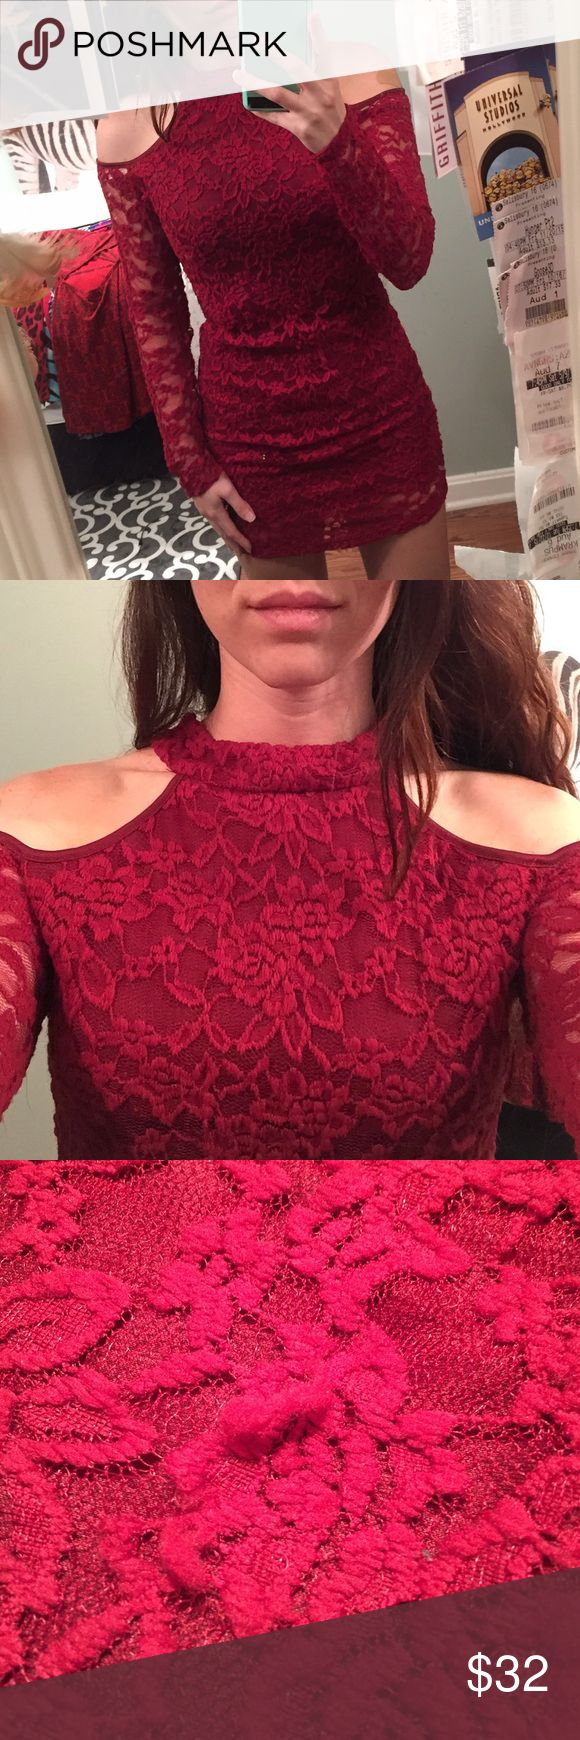 Maroon Lace long-sleeve dress So pretty! Worn once but the lace shows it. A full pills and the arms have little strings (as shown) Charlotte Russe Dresses Mini